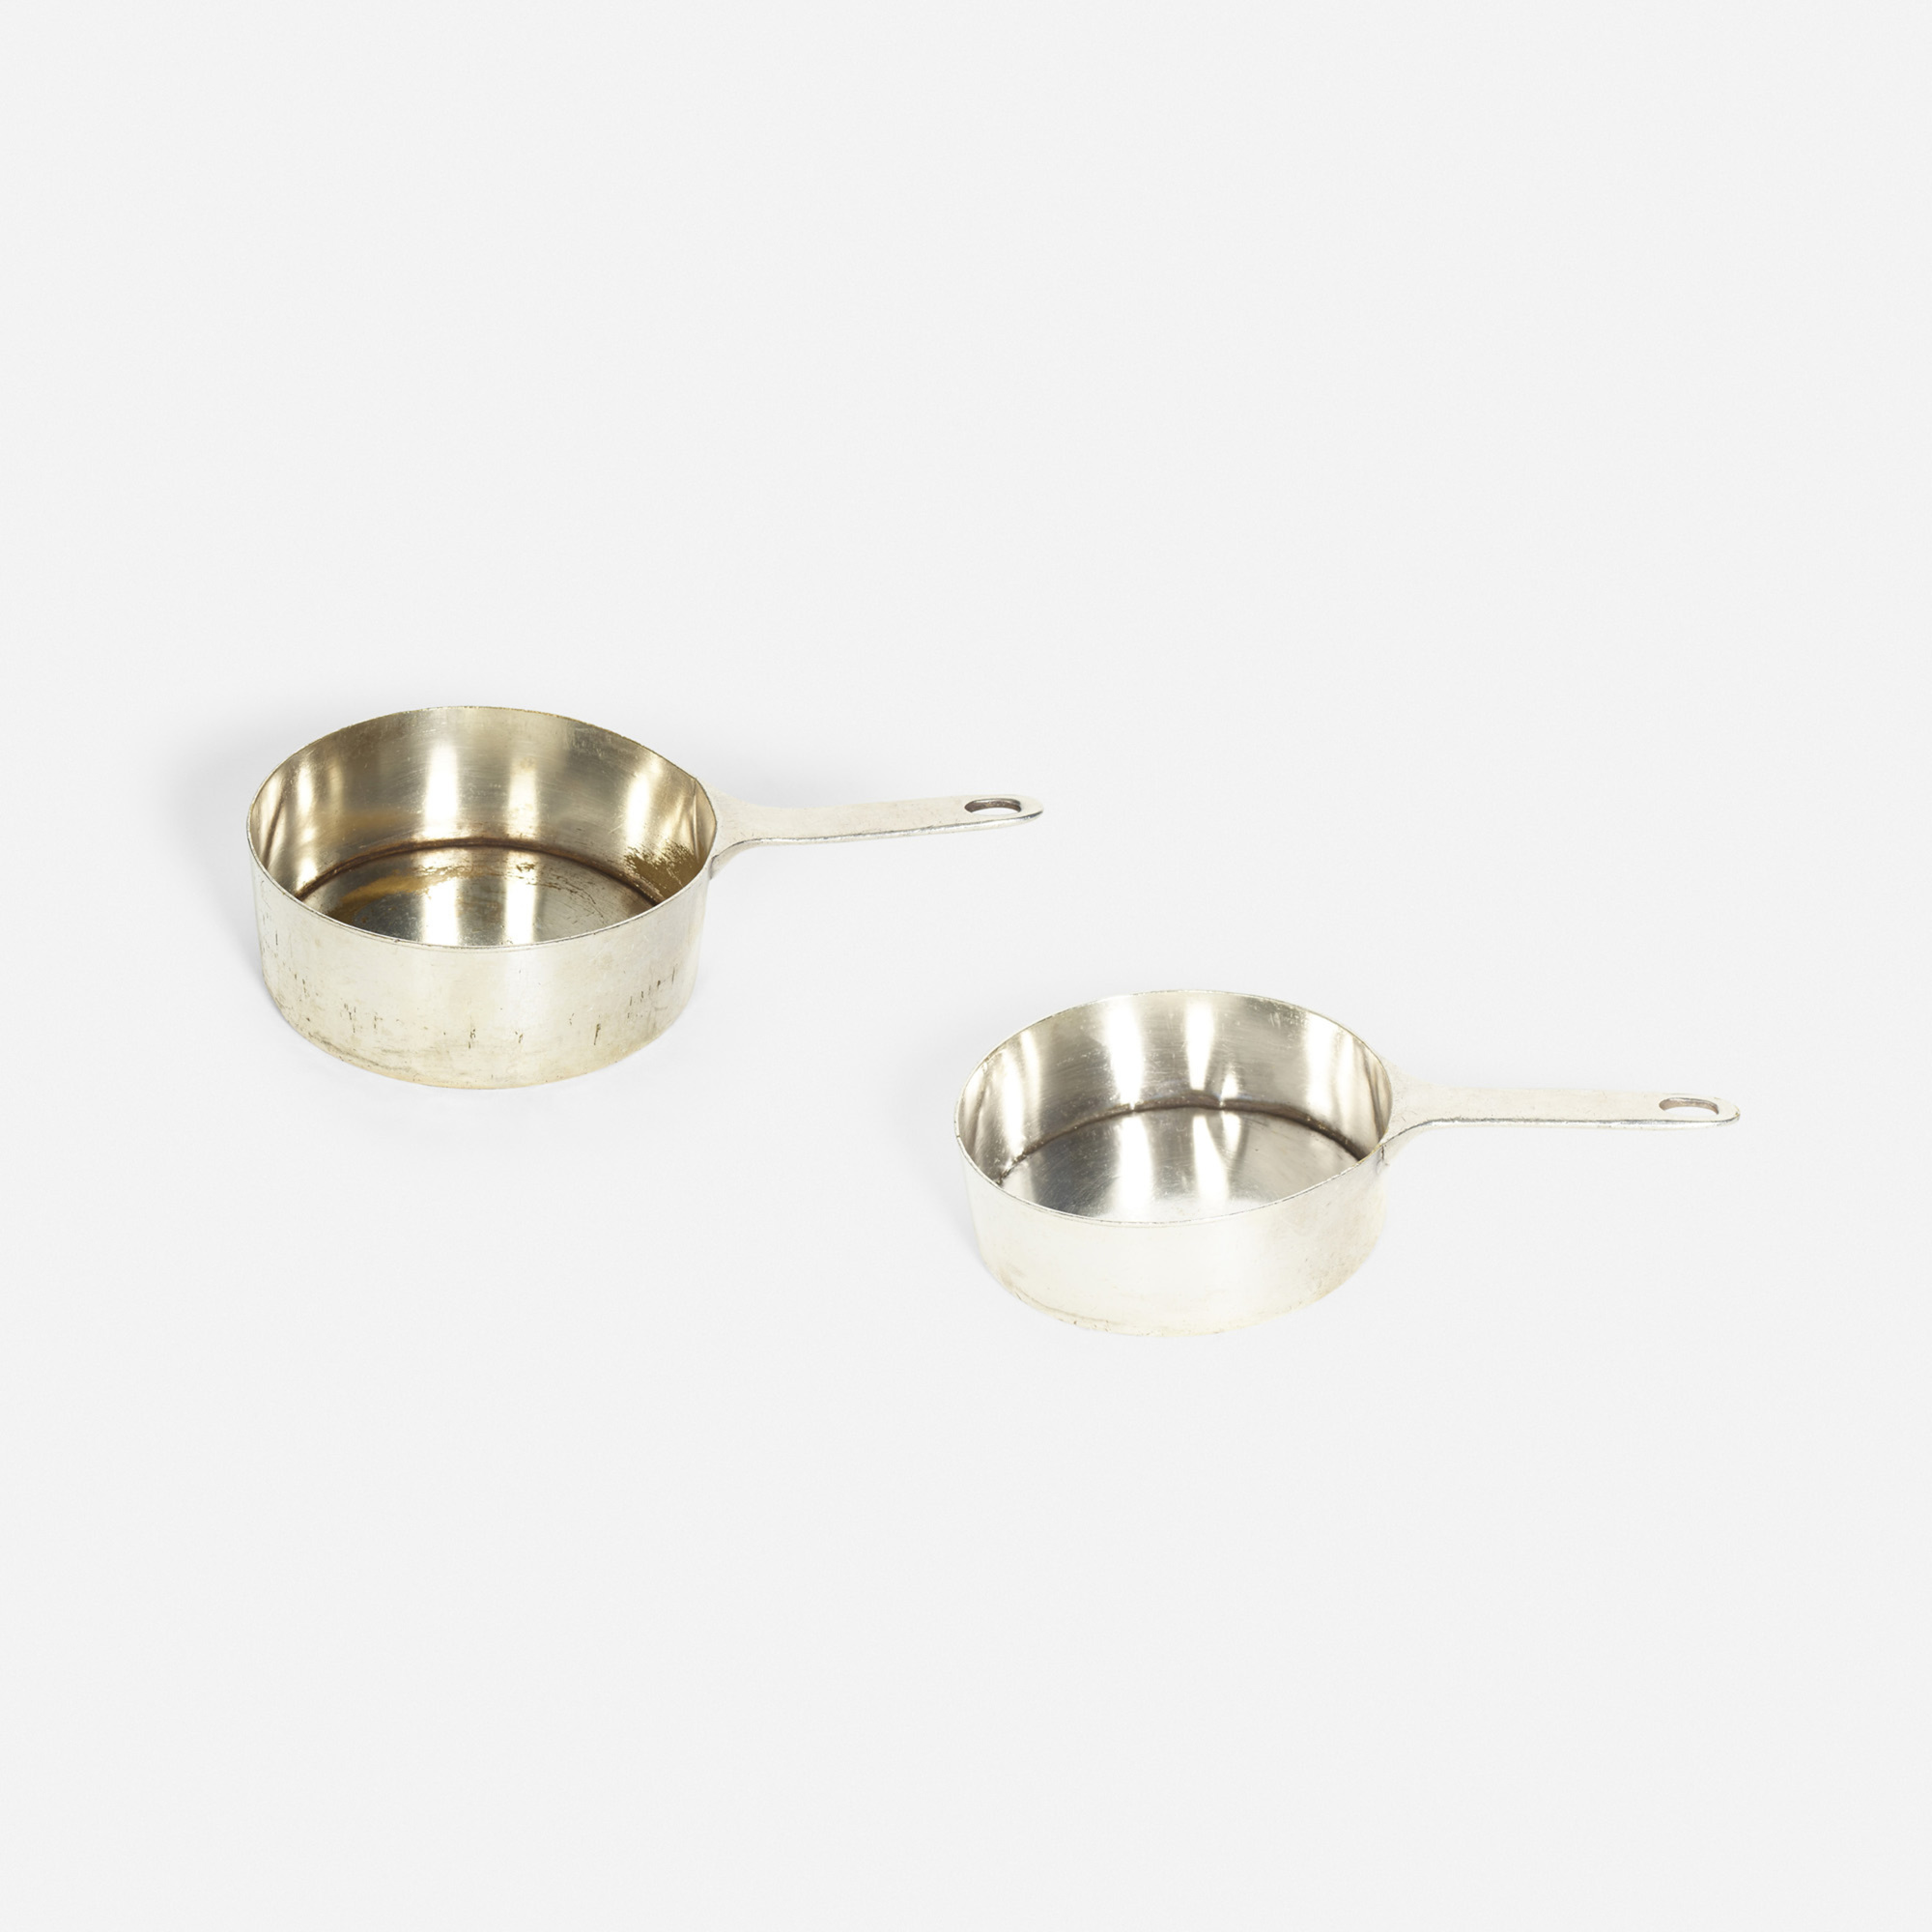 866: Garth and Ada Louise Huxtable / sauce pots from the kitchen of The Four Seasons, set of two (1 of 1)